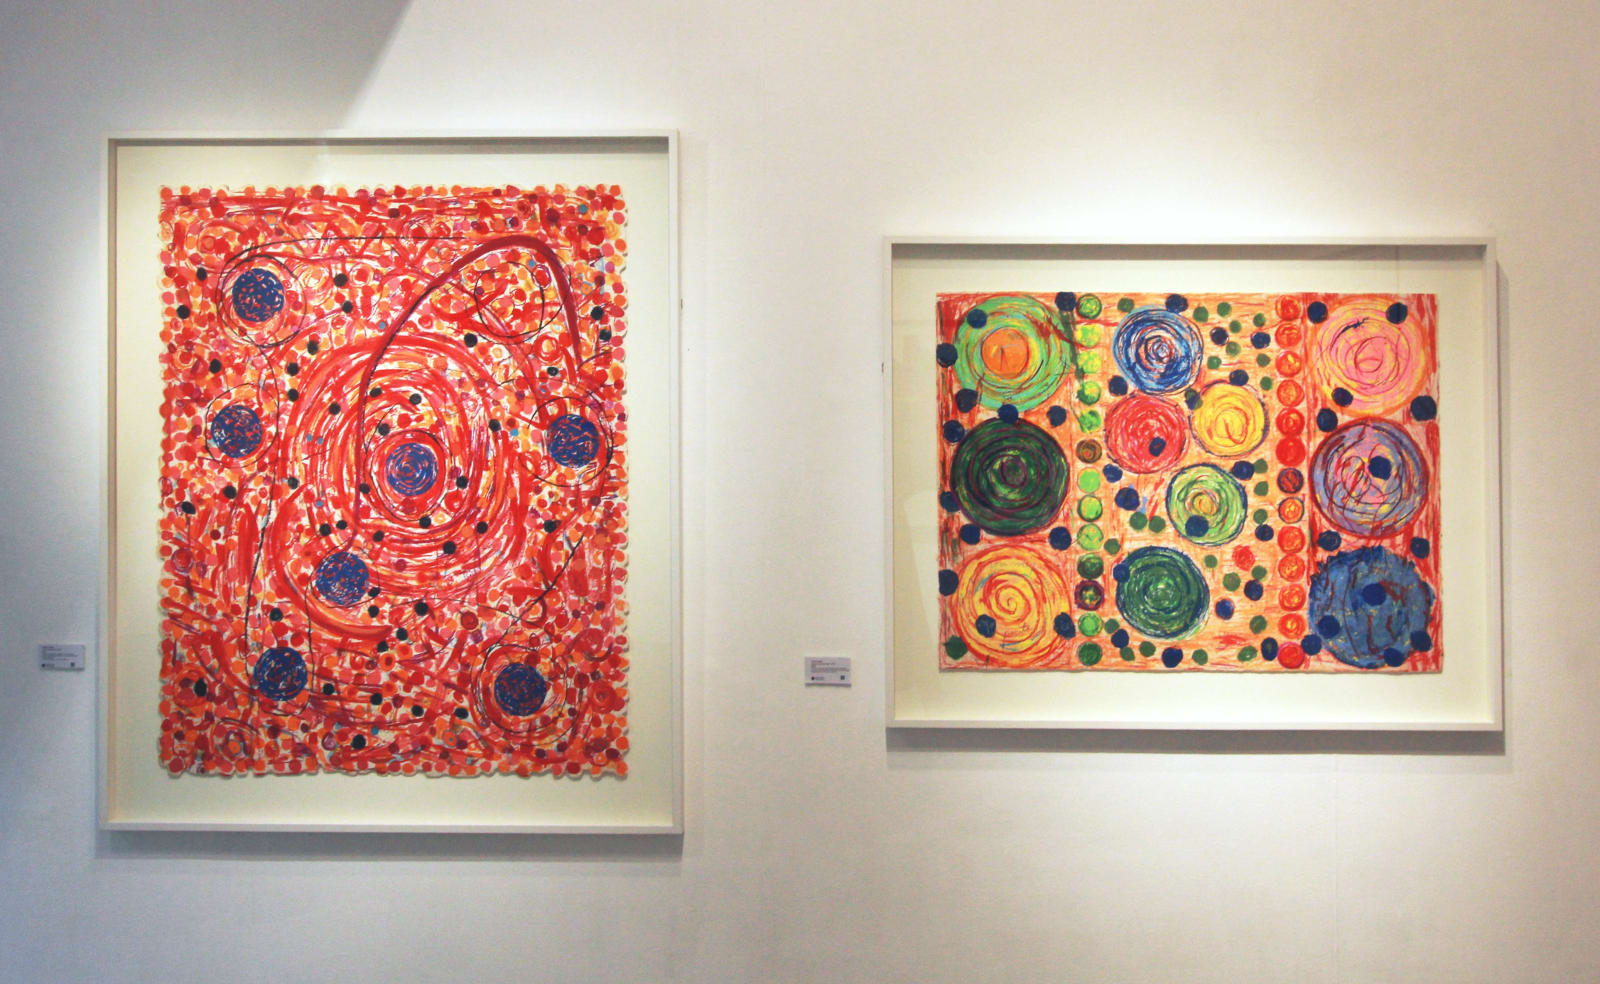 Revisiting Circles in My Mind by Pacita Abad